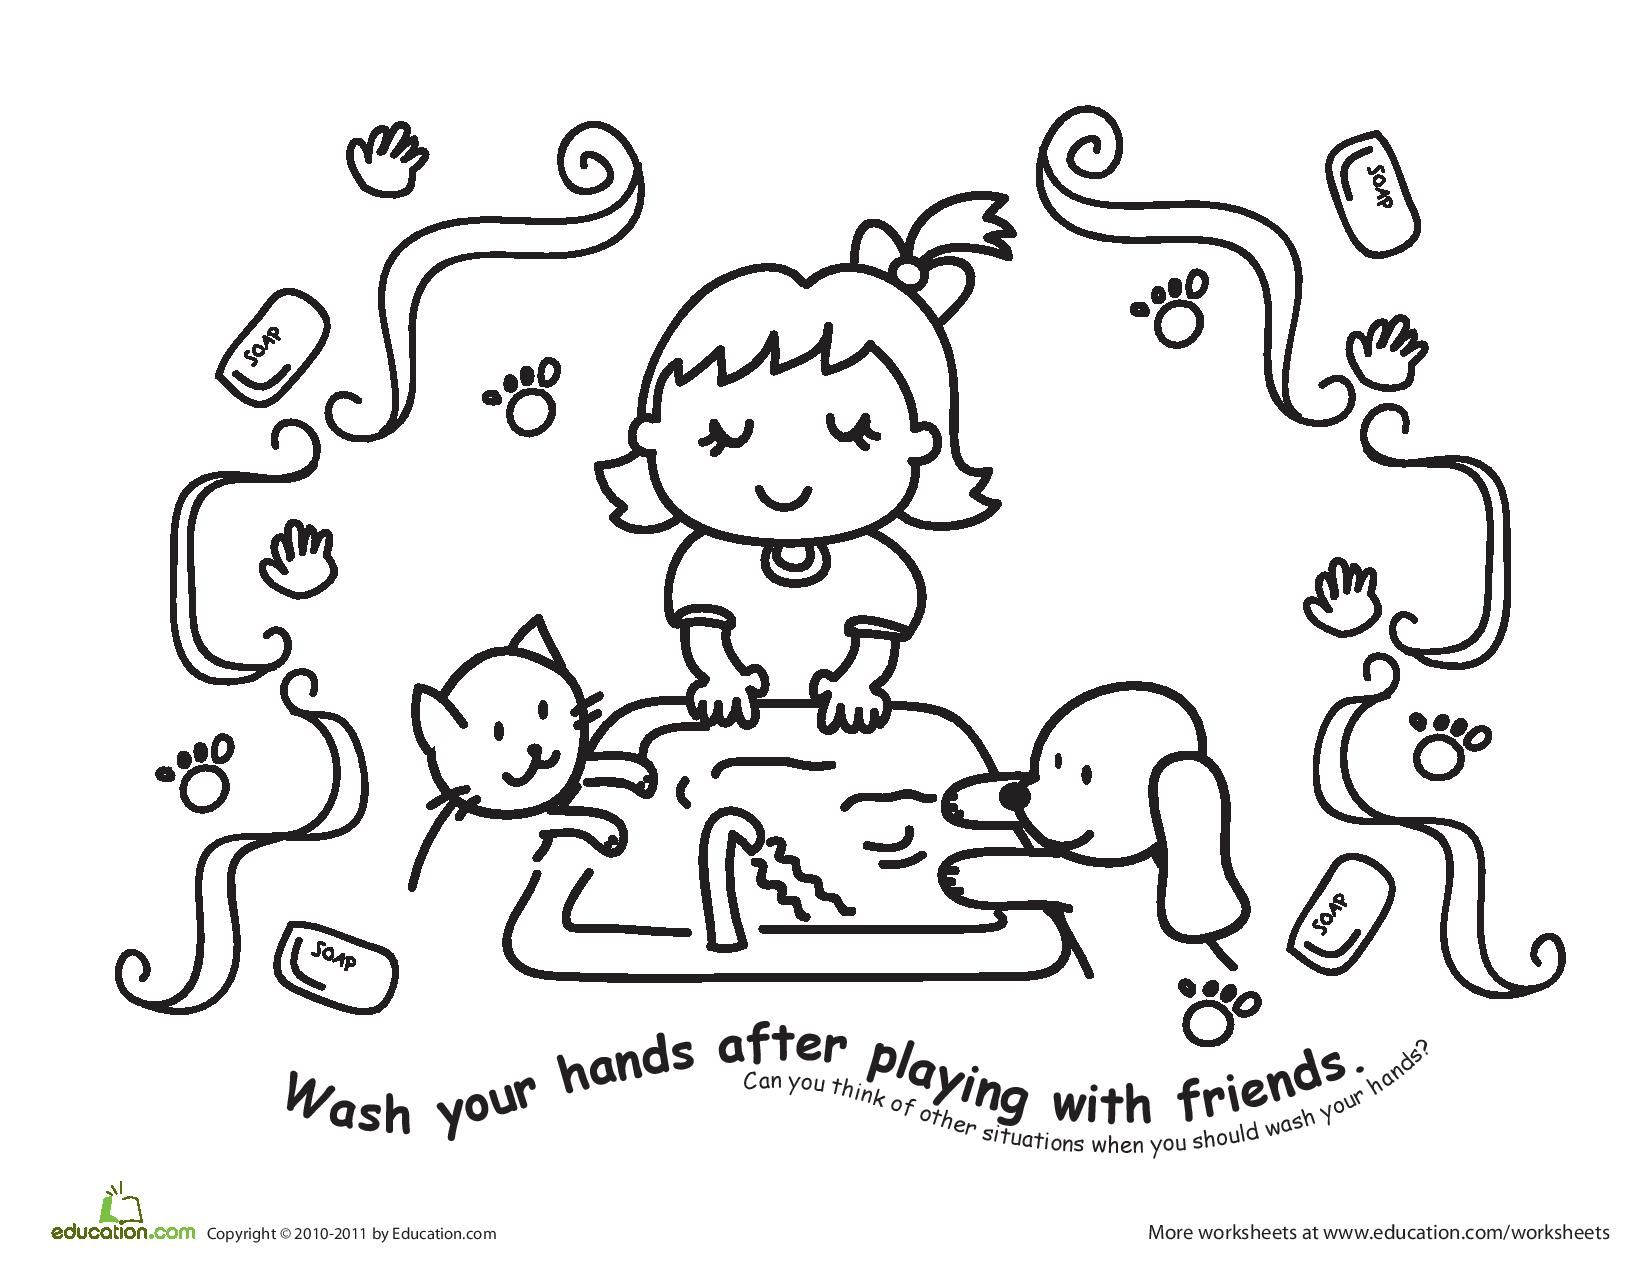 Color The Hand Washing Scene Wash Your Hands After Playing With